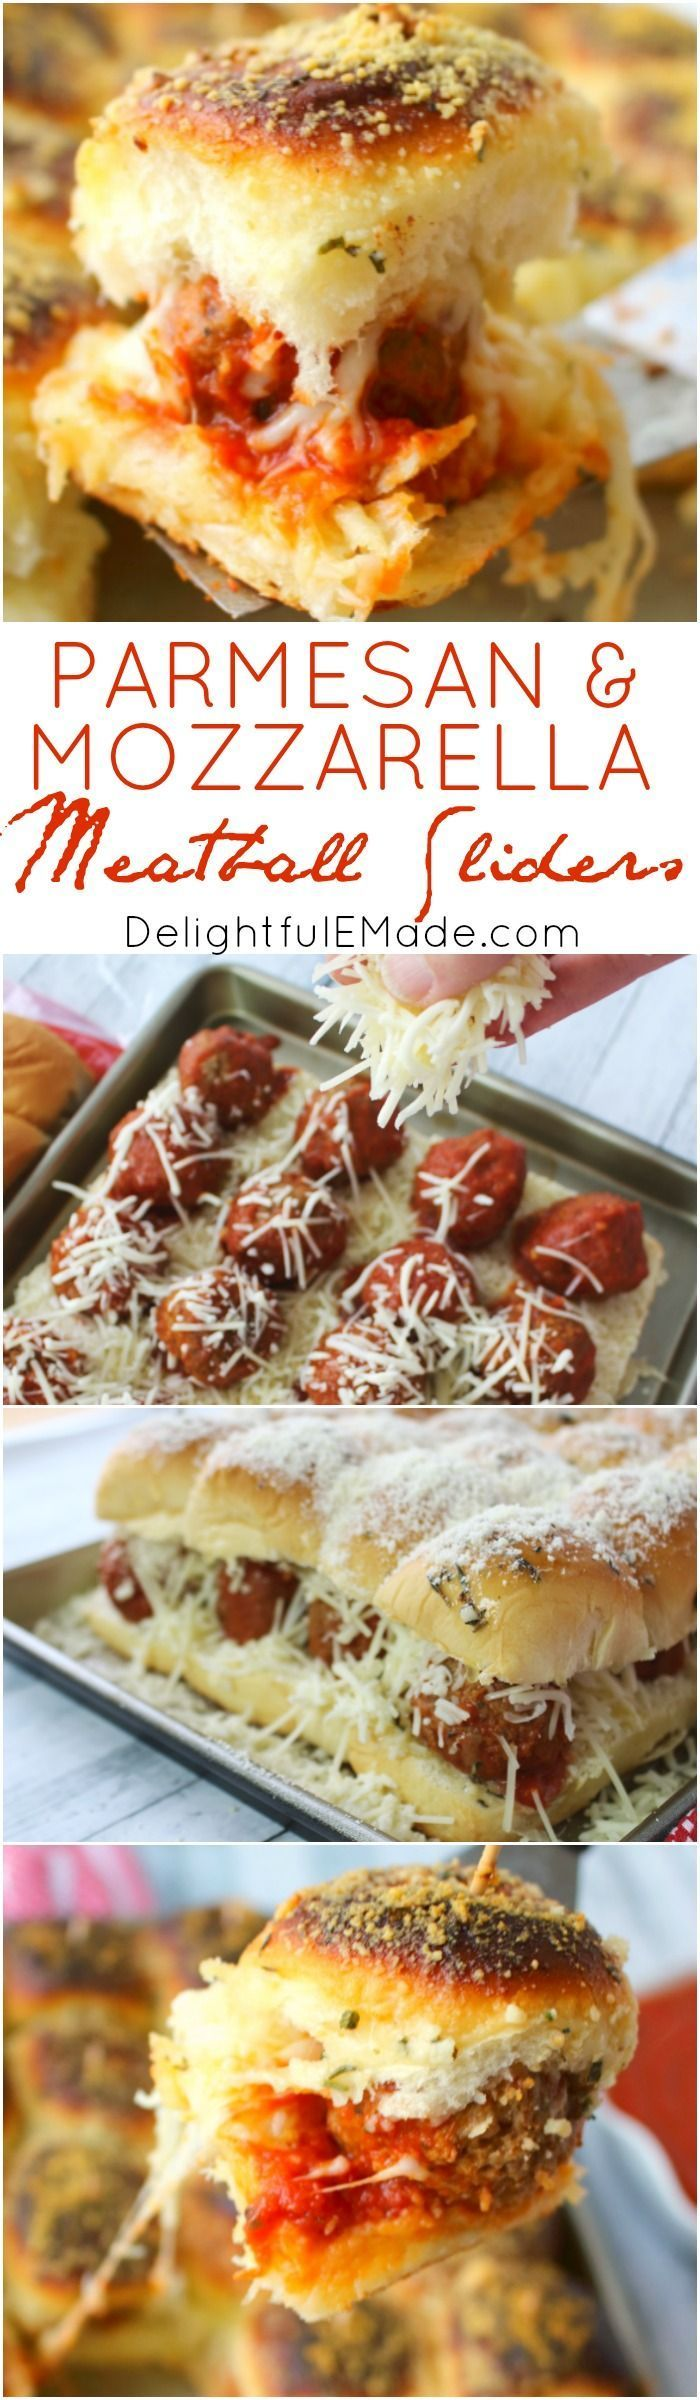 These amazing Parmesan & Mozzarella Meatball Sliders are the perfect party food! Super-simple to make, this easy slider recipe is great for serving at your next watch party and also makes for a great pot-luck dish. #Delightfulemade #Partyfood #Appetizer #Meatballsliders #Potluck #Mozzarella #Meatball